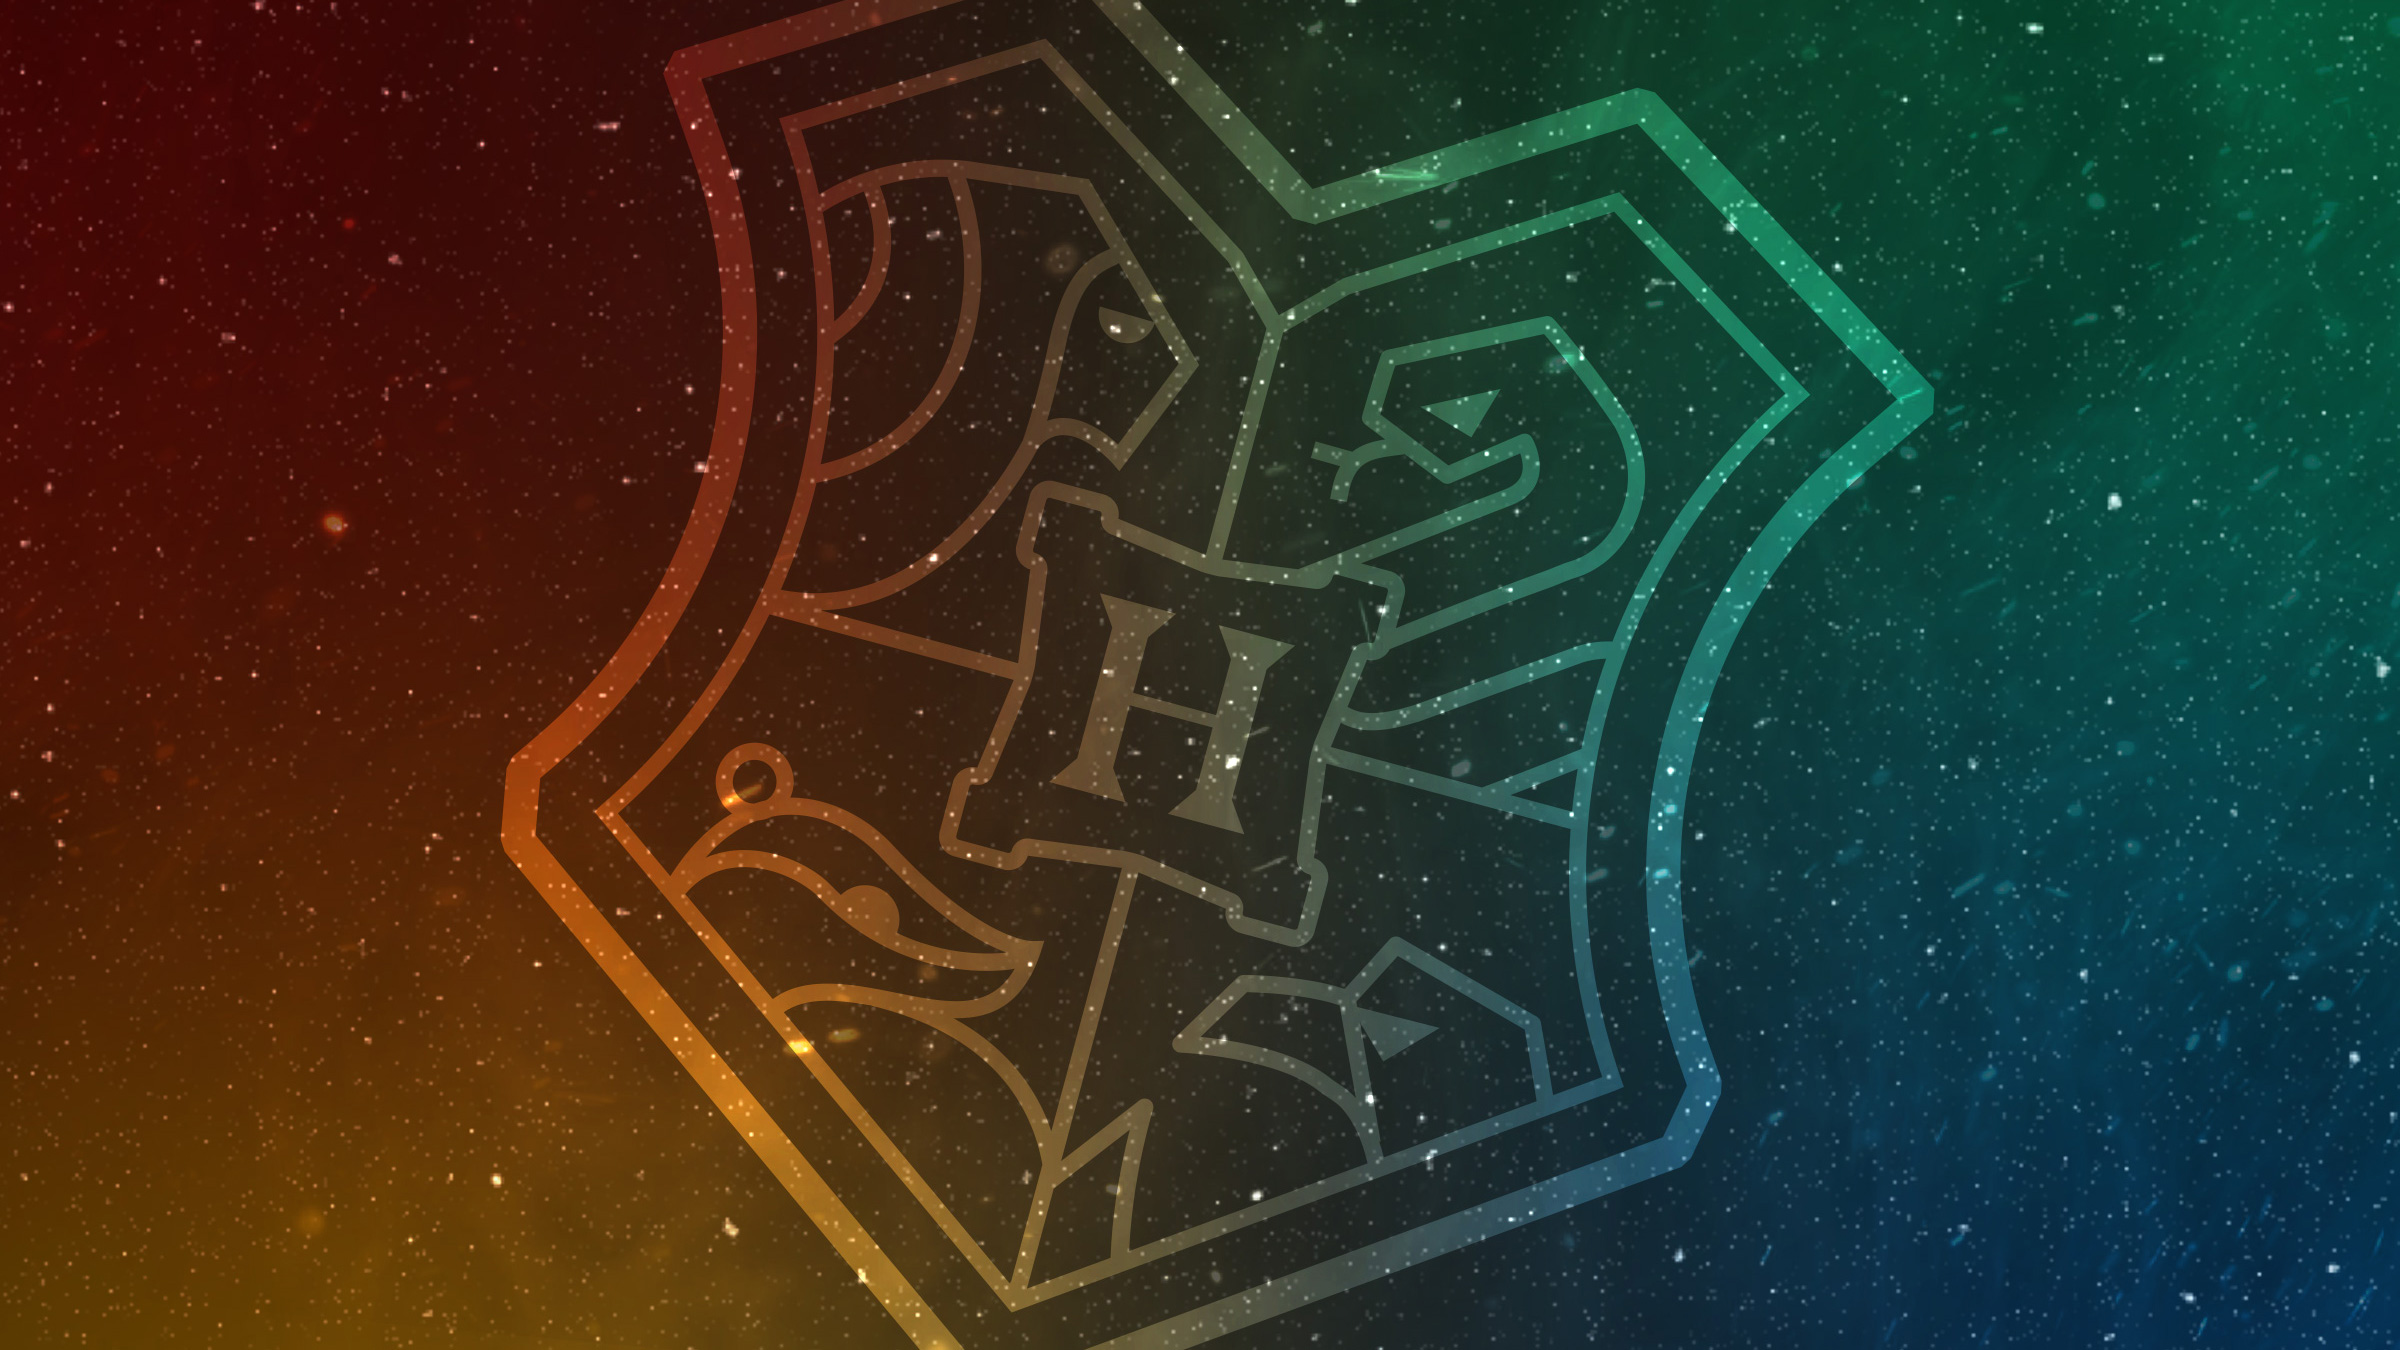 Find out which Hogwarts house you're in